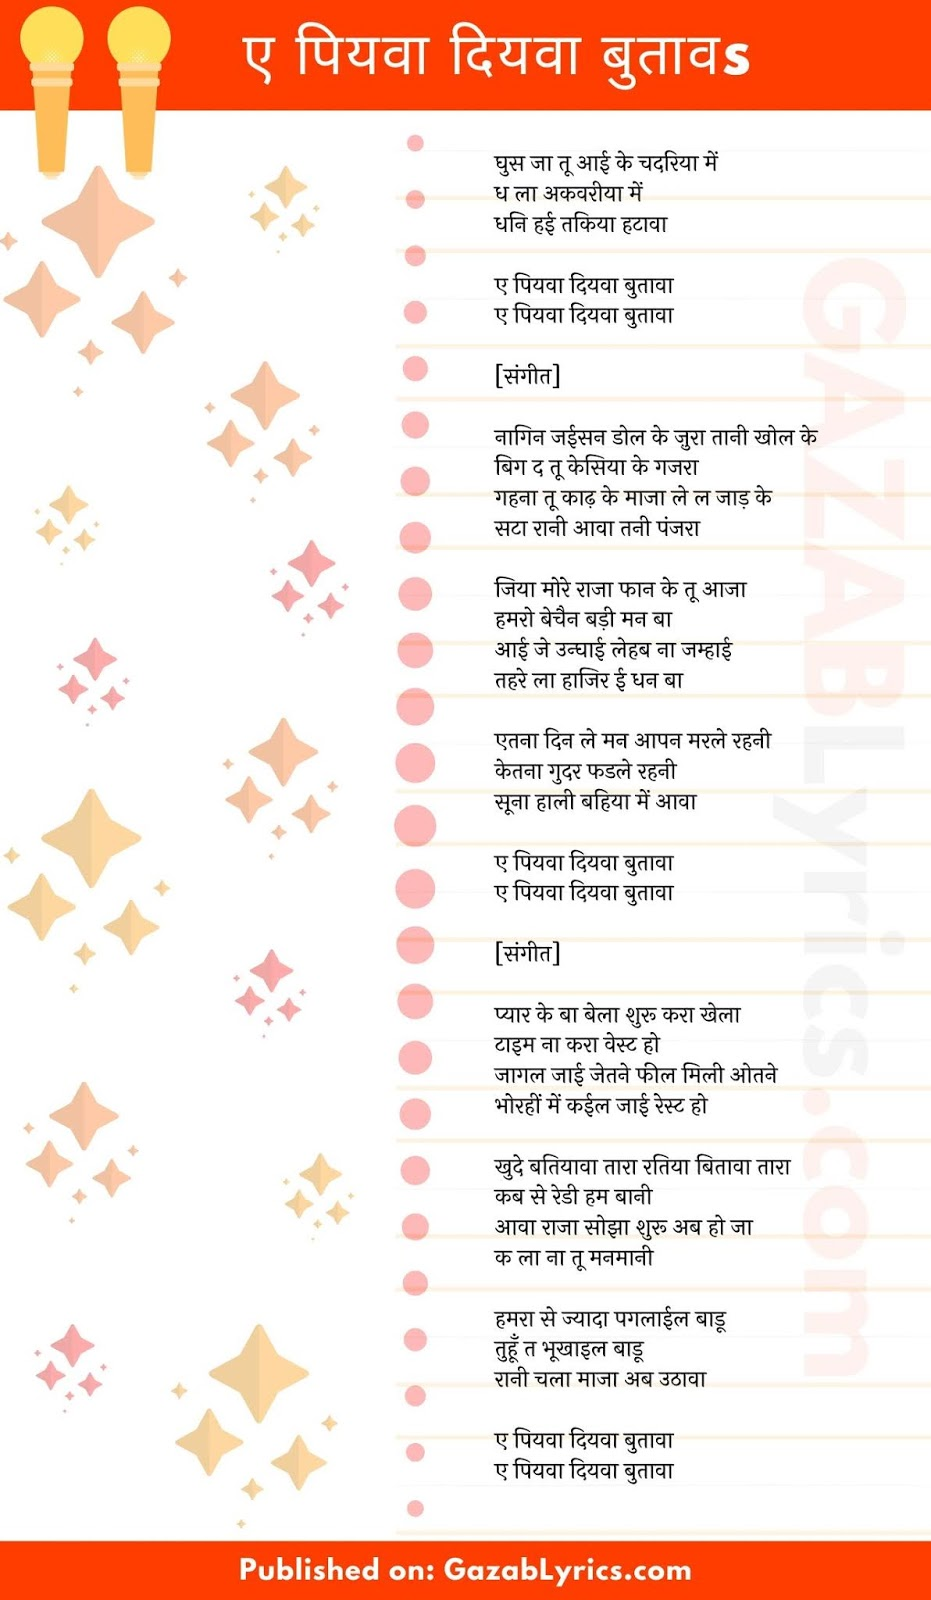 E Piywa Diywa Butava song lyrics image